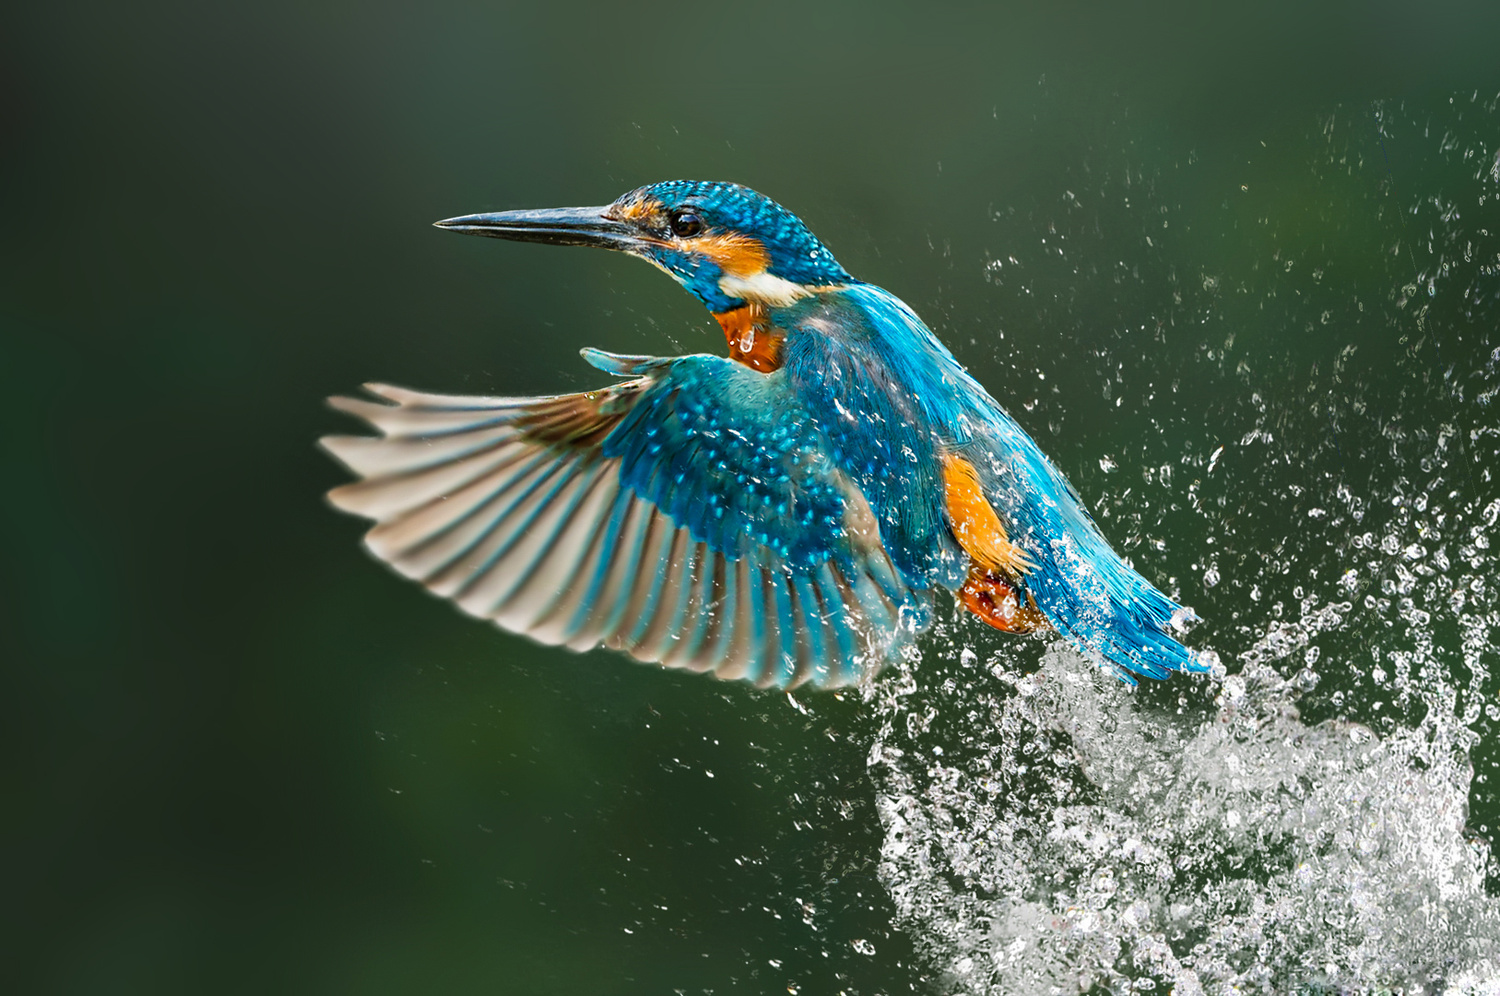 The Dive by Kevin Plovie